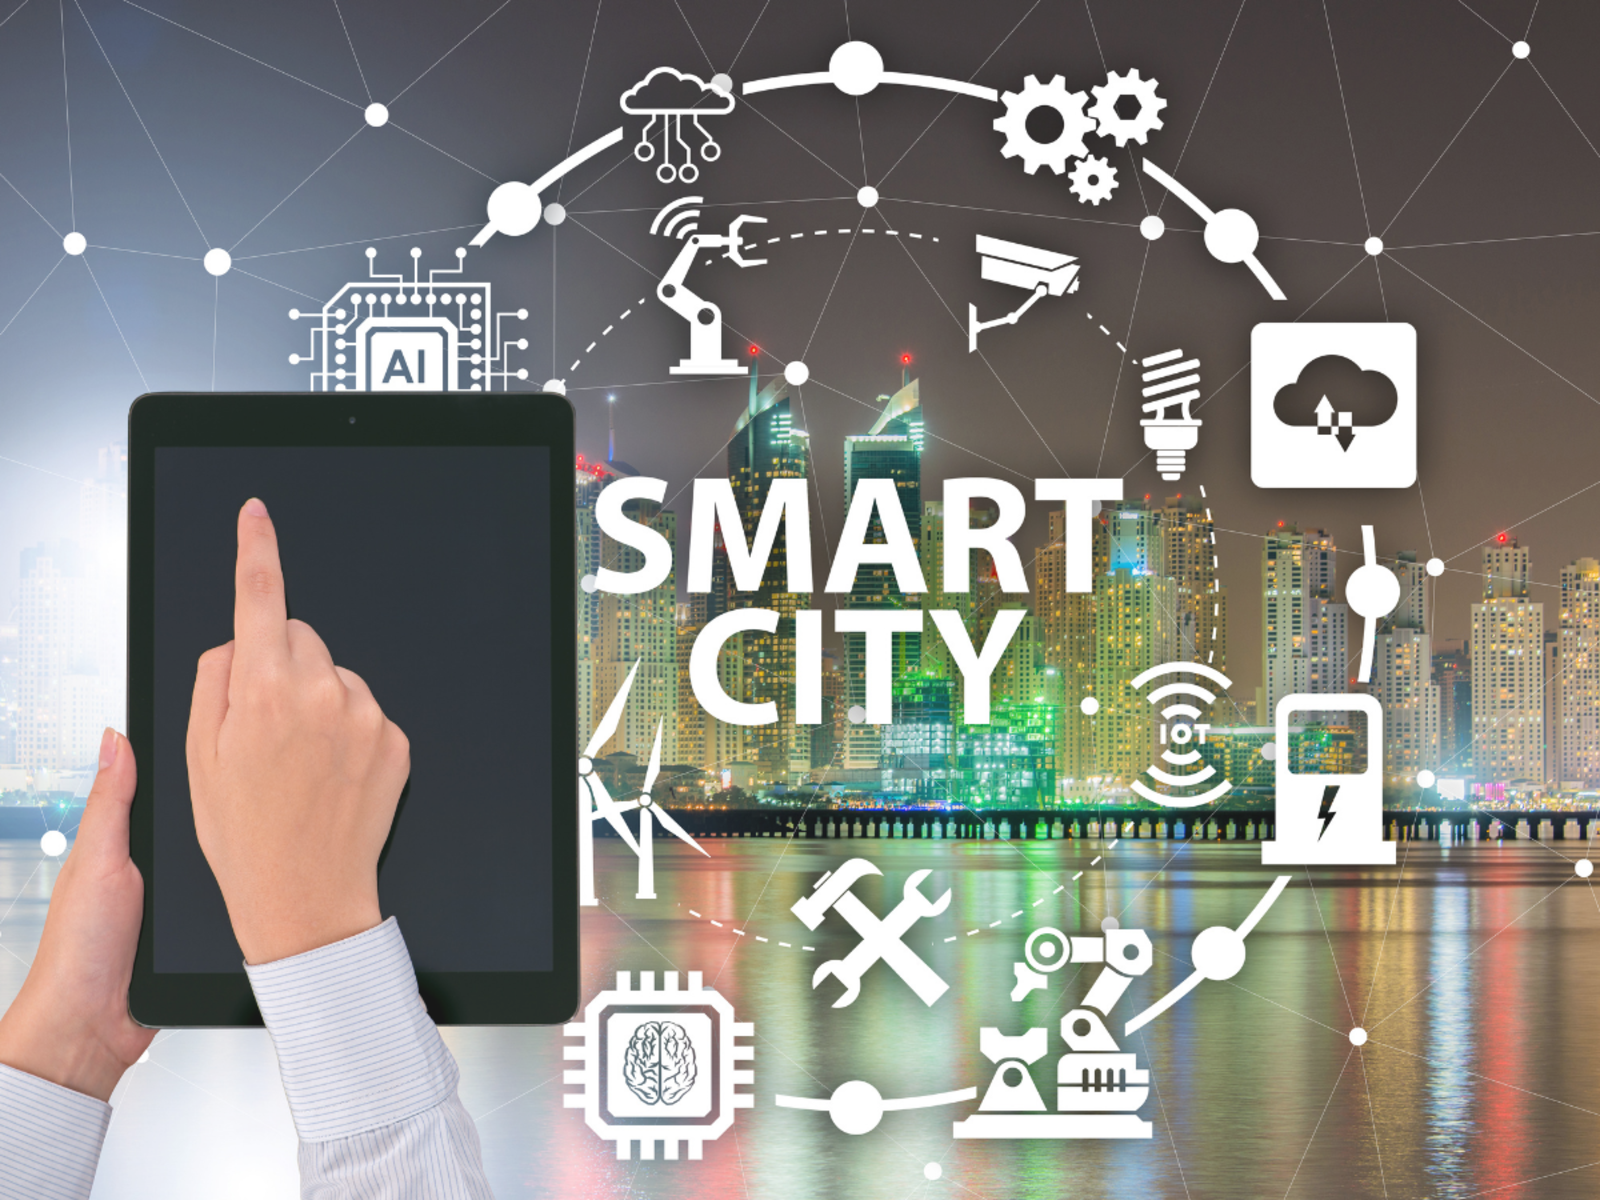 Interconnection of People and Technology  - Smart City